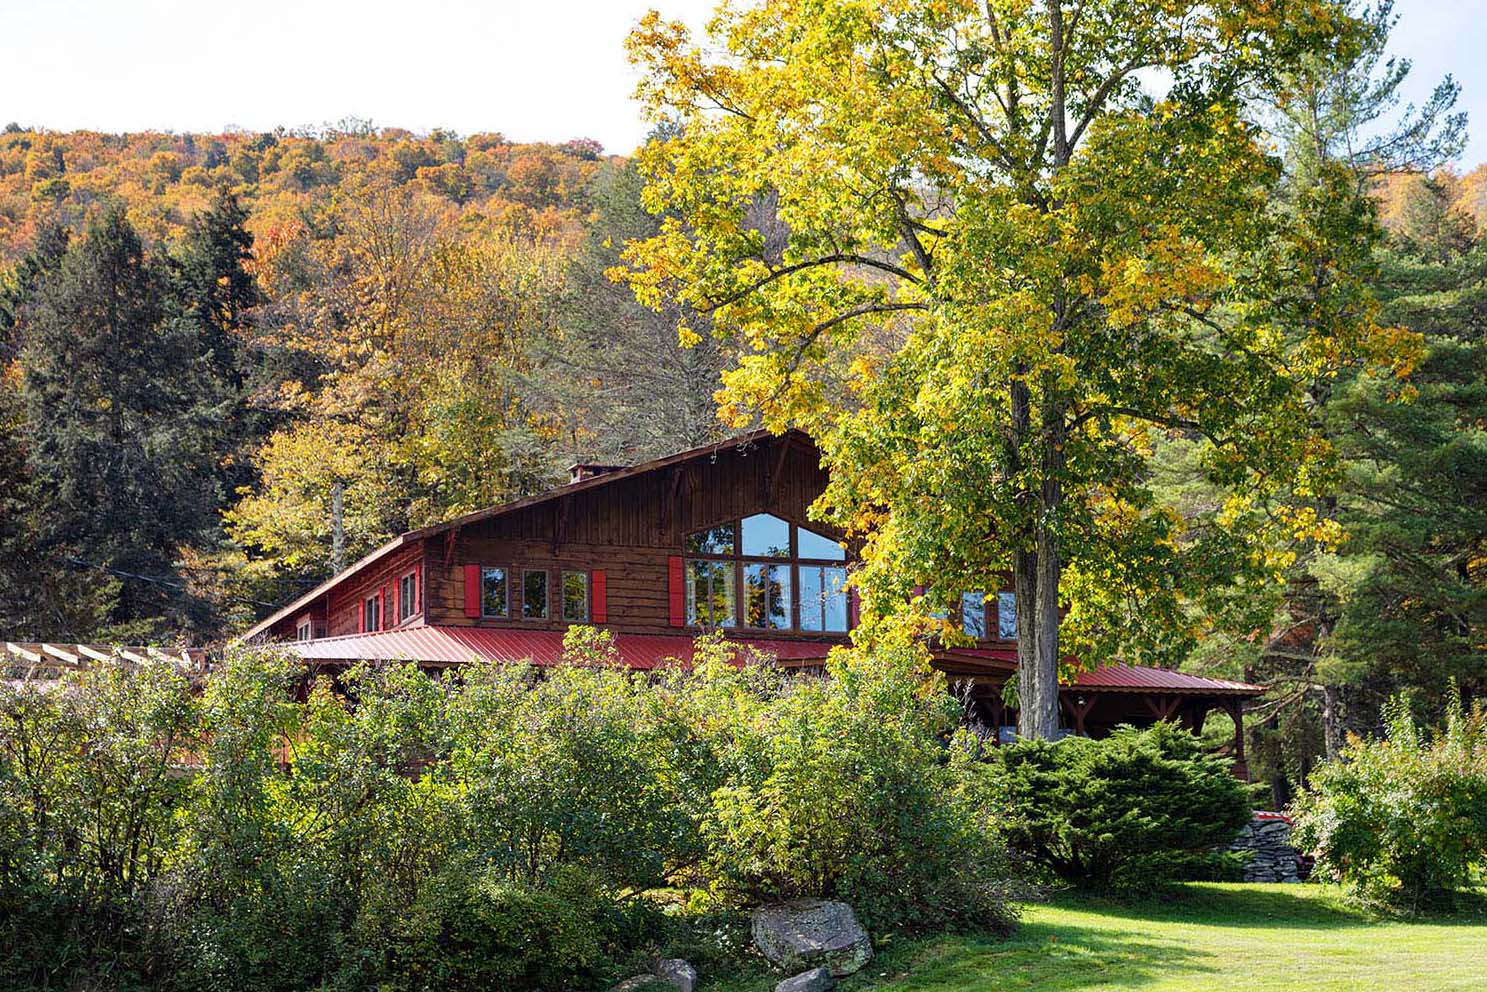 Urban Cowboy Lodge Catskills New York State Design Hotel